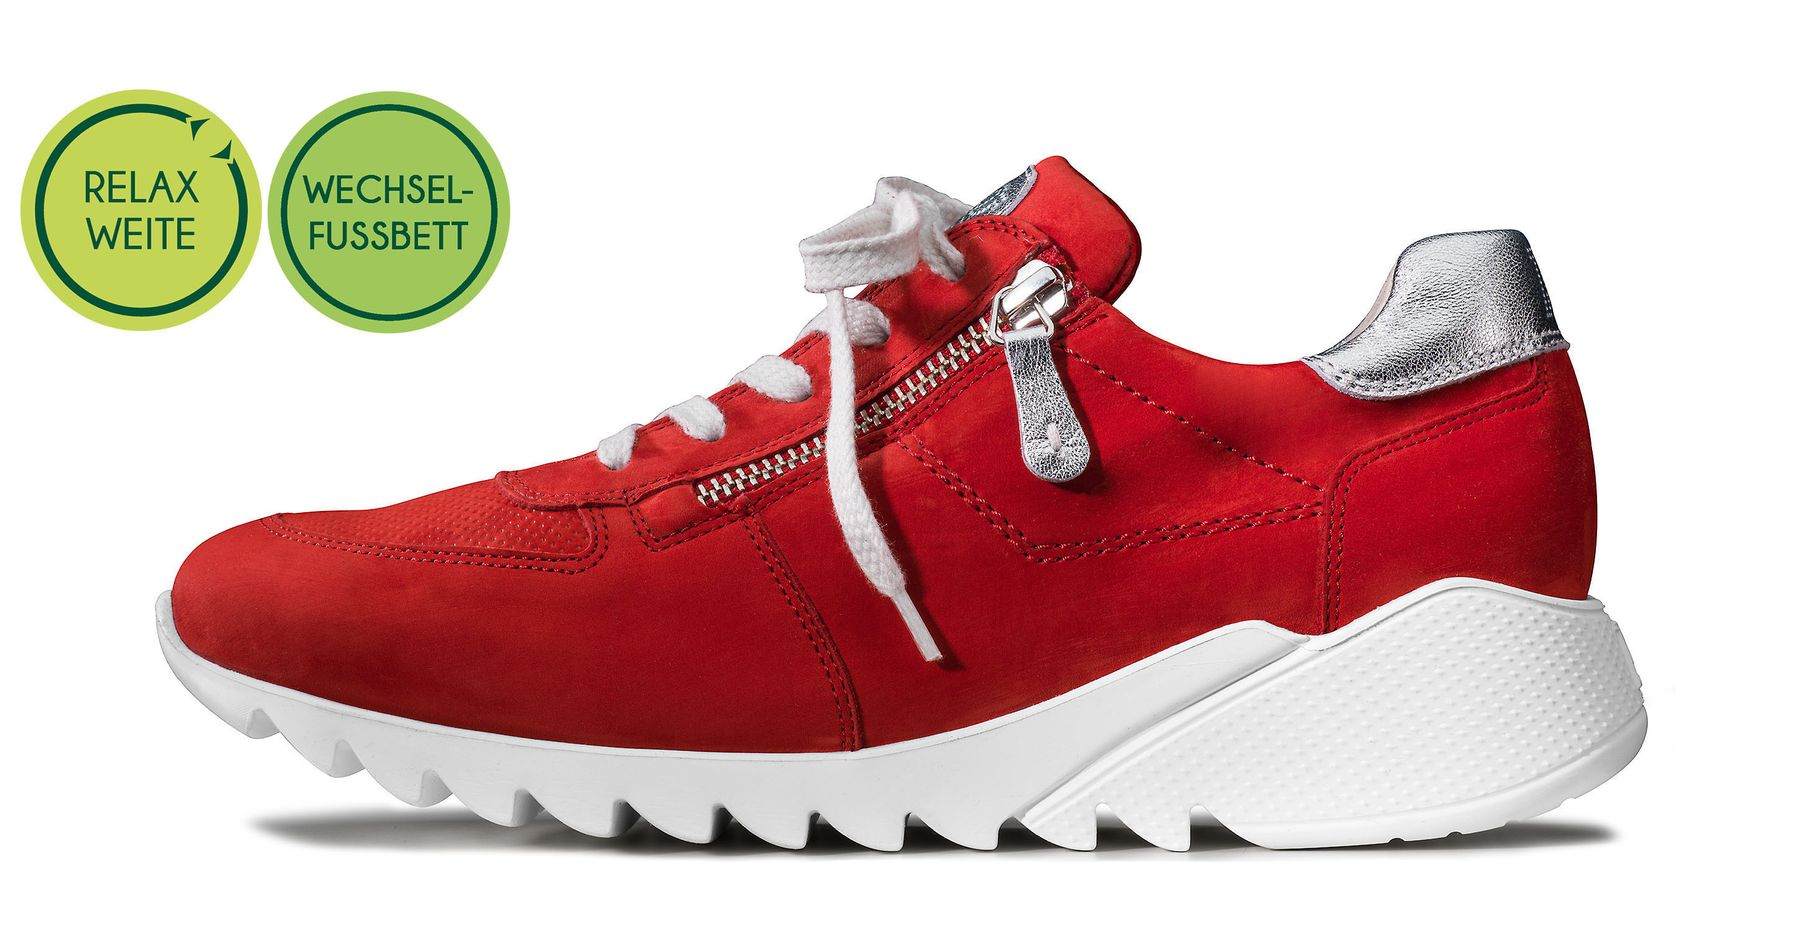 Women's Relax sneakers, red Paul Green